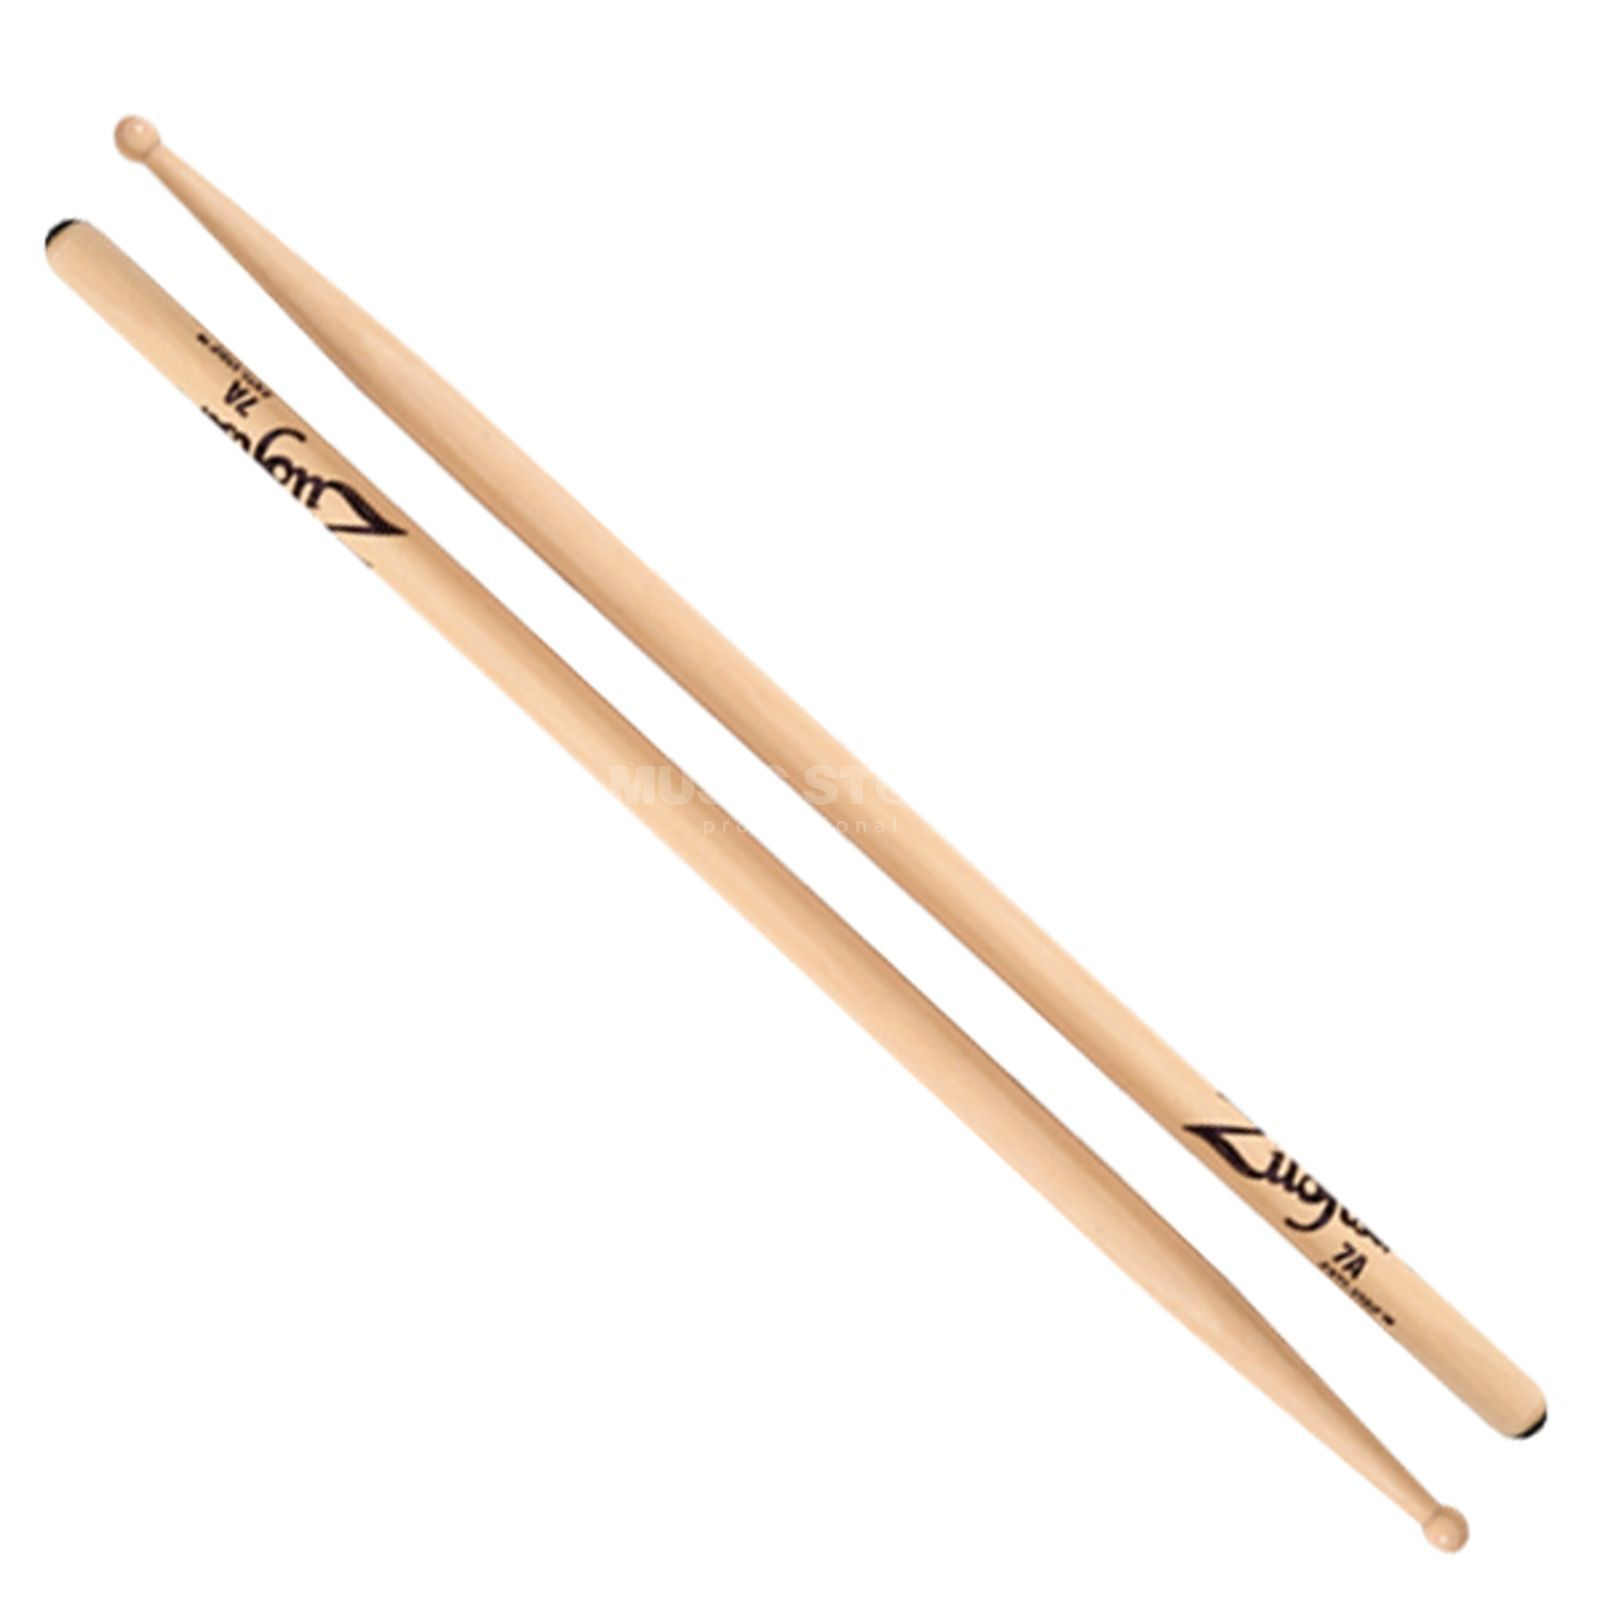 Zildjian Anti-Vibe 7A Sticks, Wood Tip Produktbild